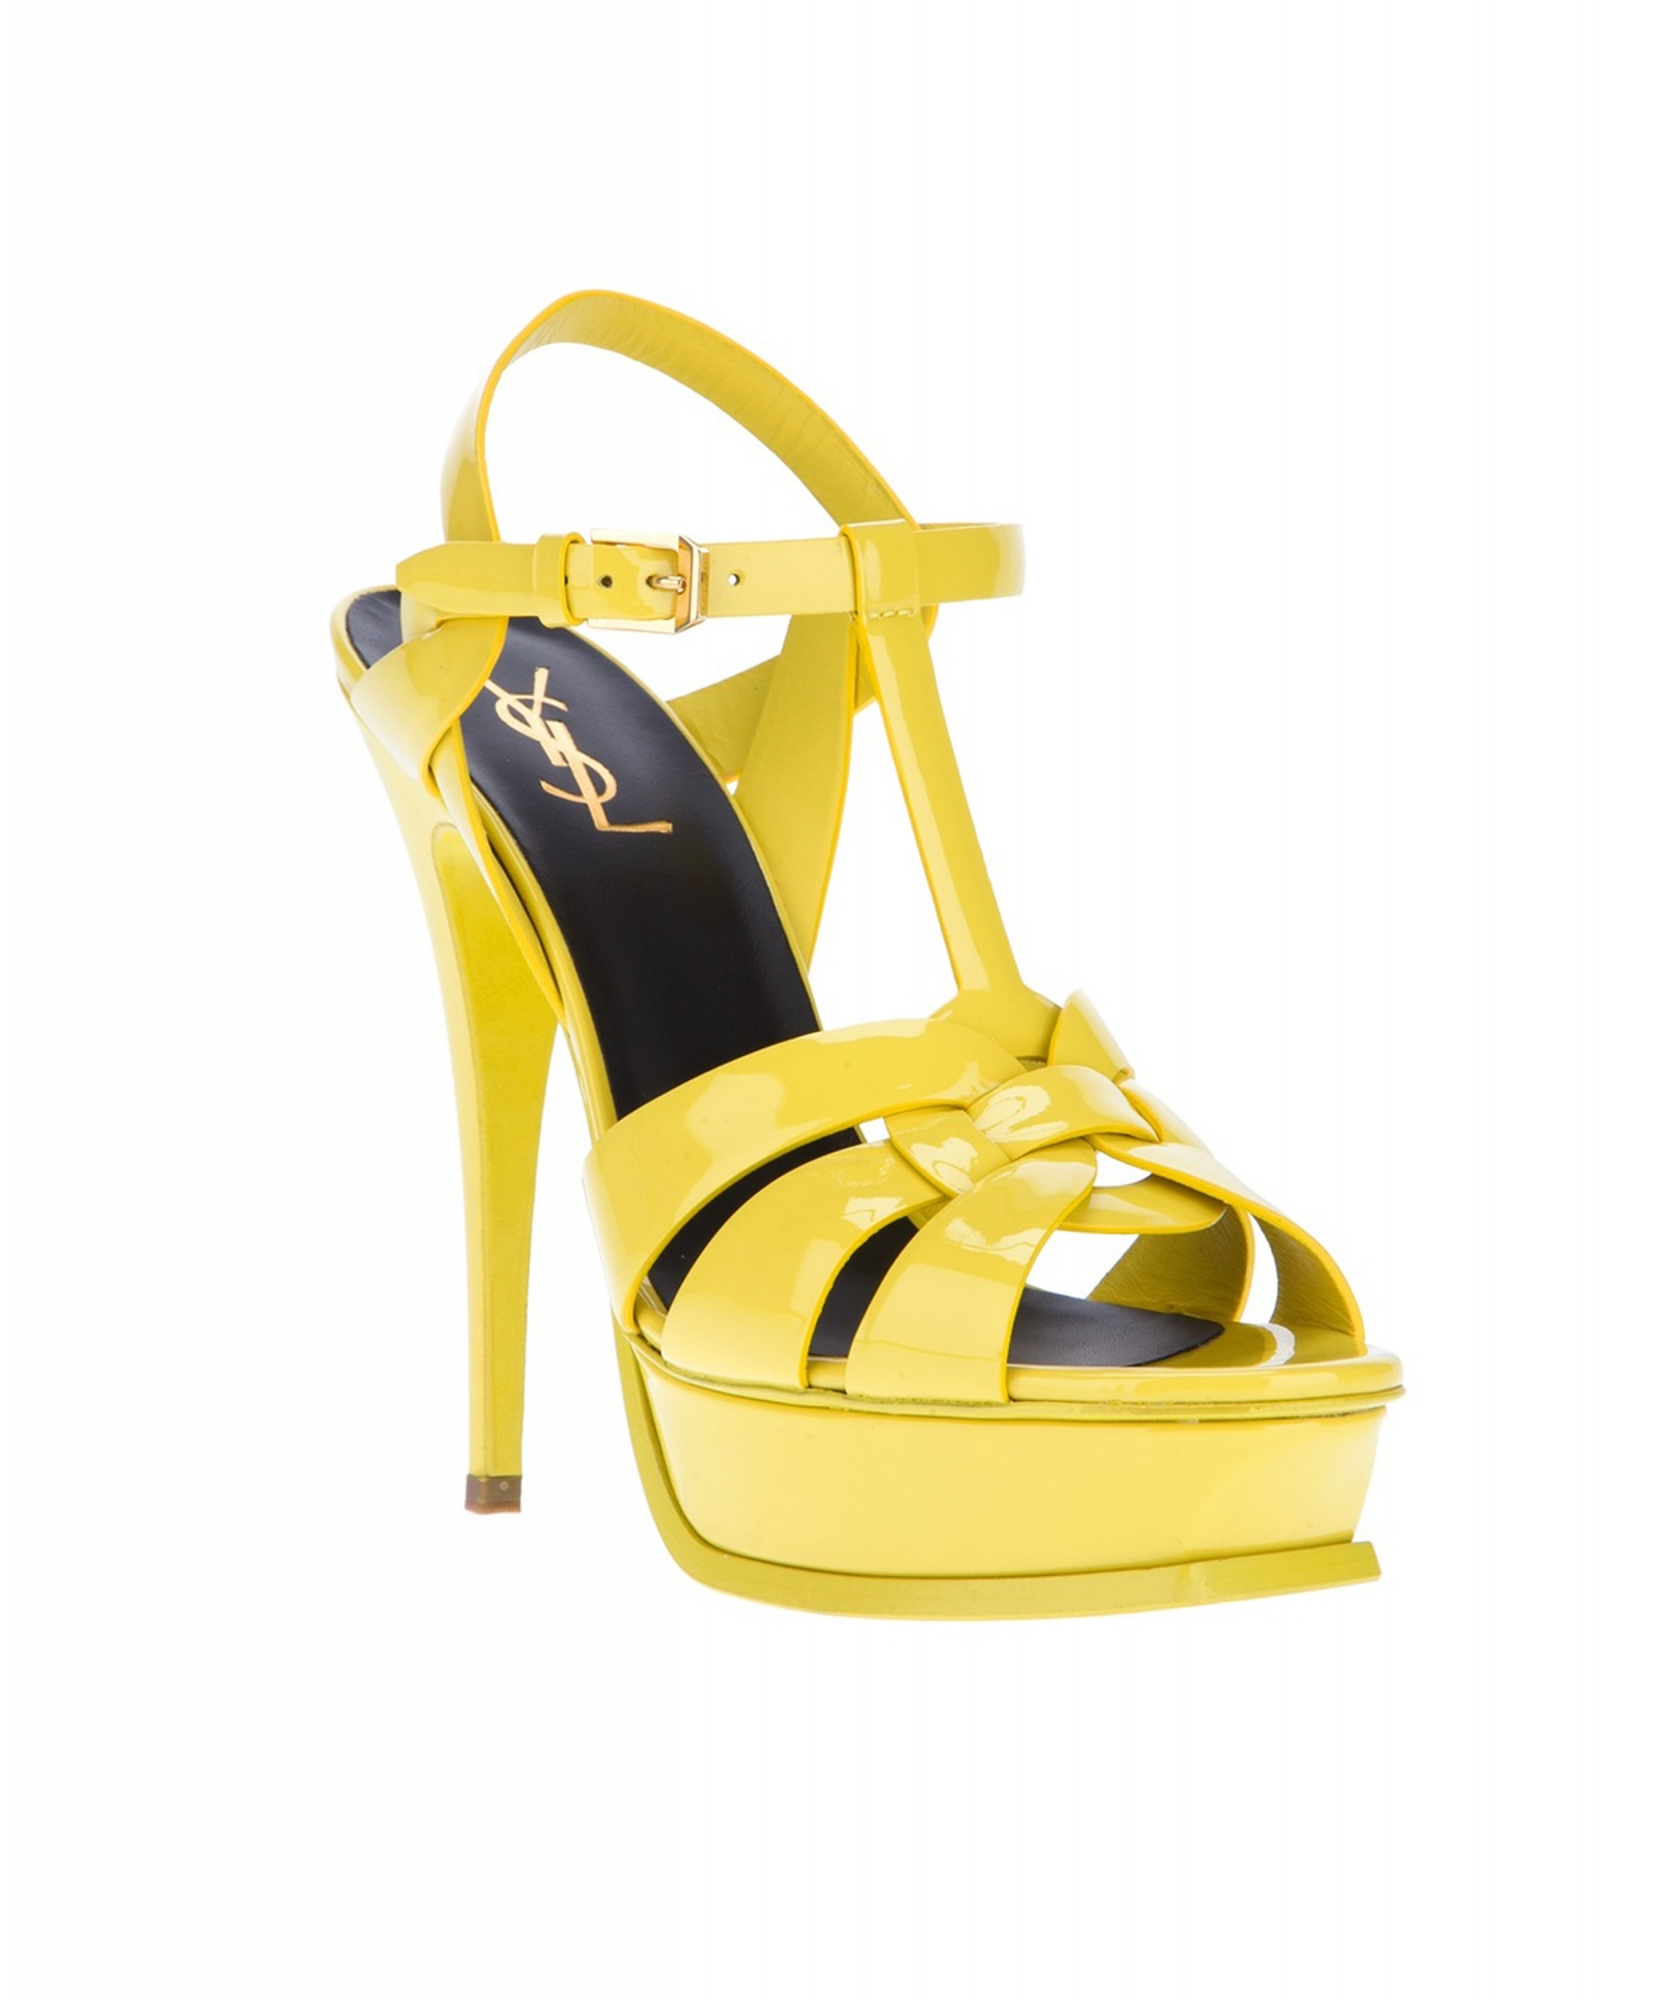 b8c4f8ea885 Yves Saint Laurent Tribute Sandals in Yellow Patent Leather | La Doyenne